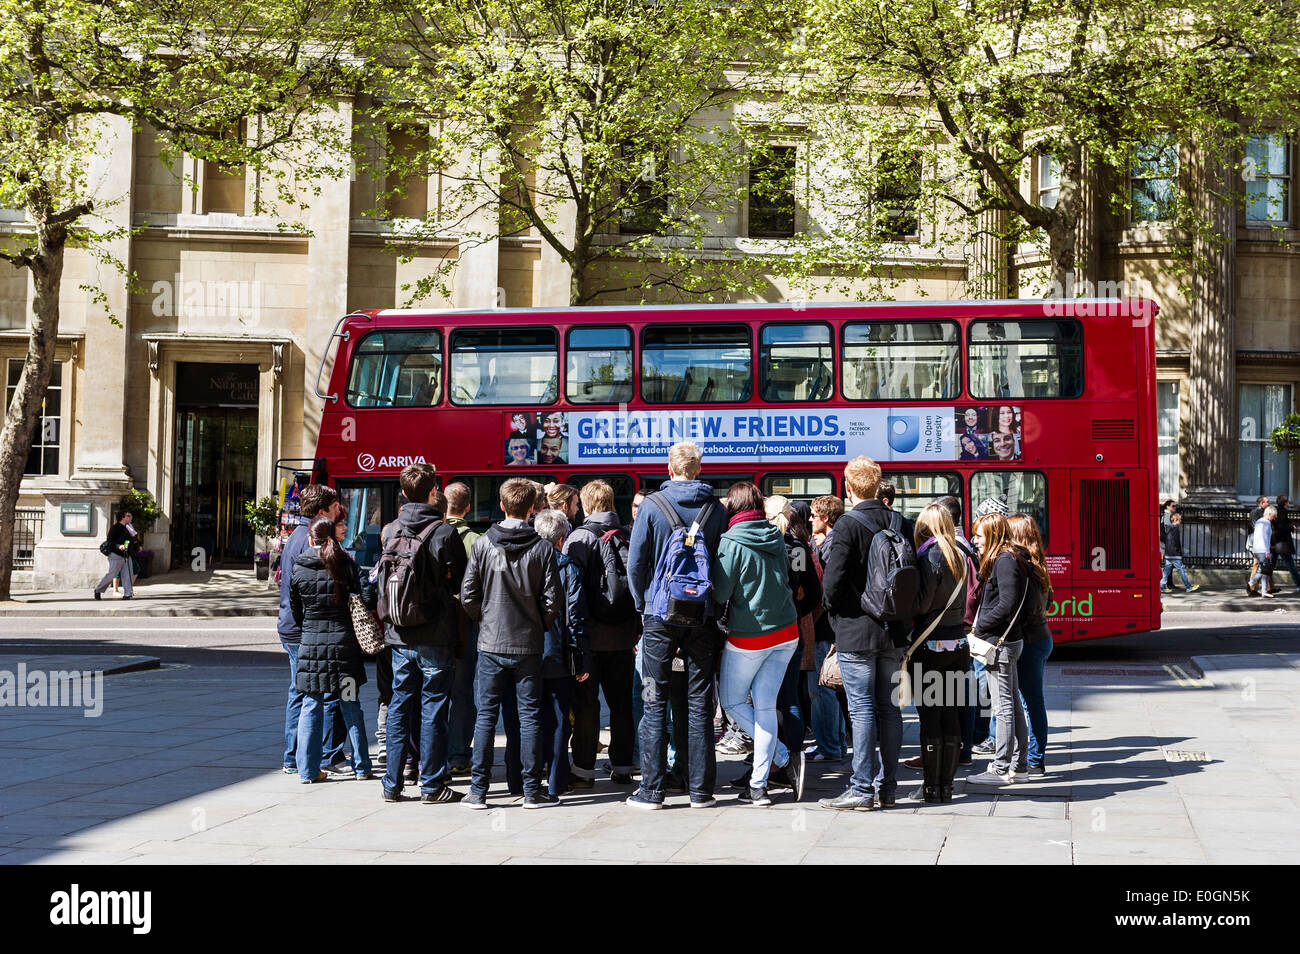 A group of foreign students on a walking tour in London. - Stock Image